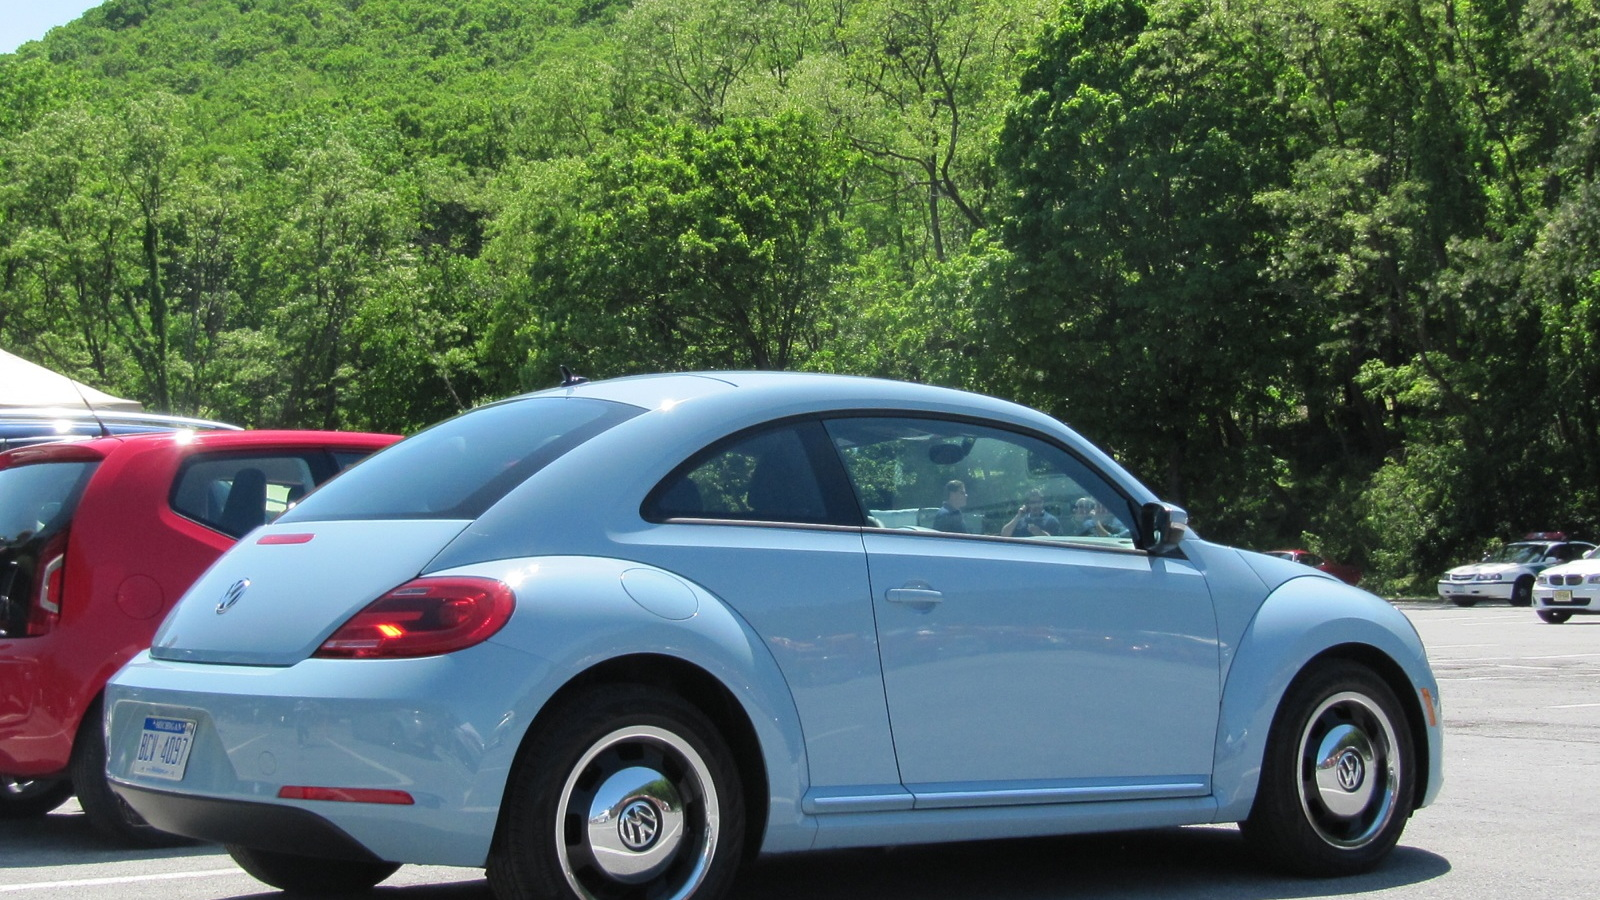 2012 Volkswagen Beetle, Bear Mountain, NY, May 2012